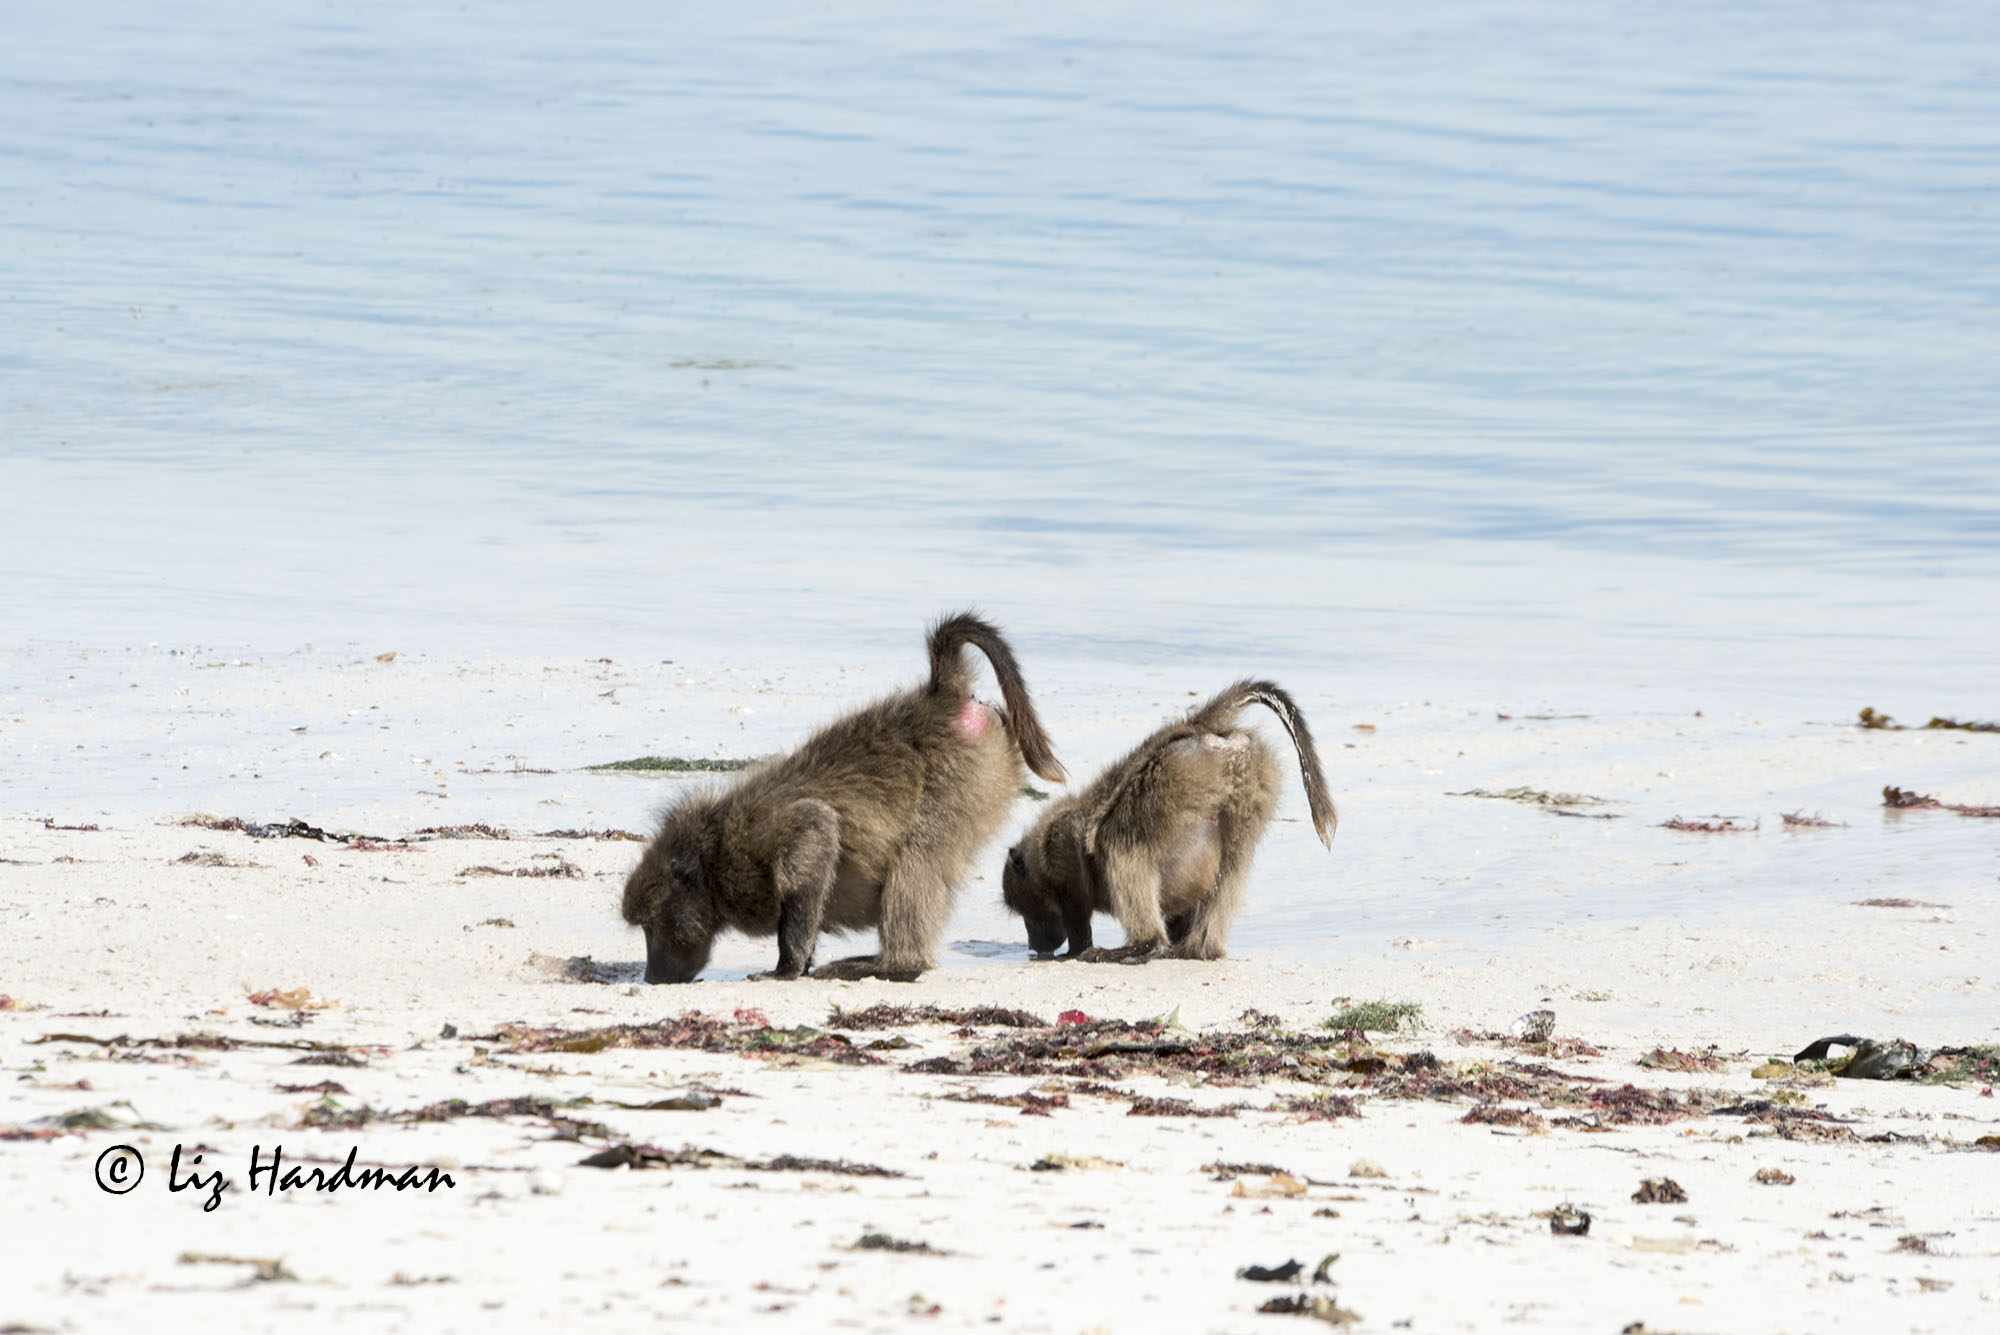 A fascinating sight as baboons find fresh water on the beach.